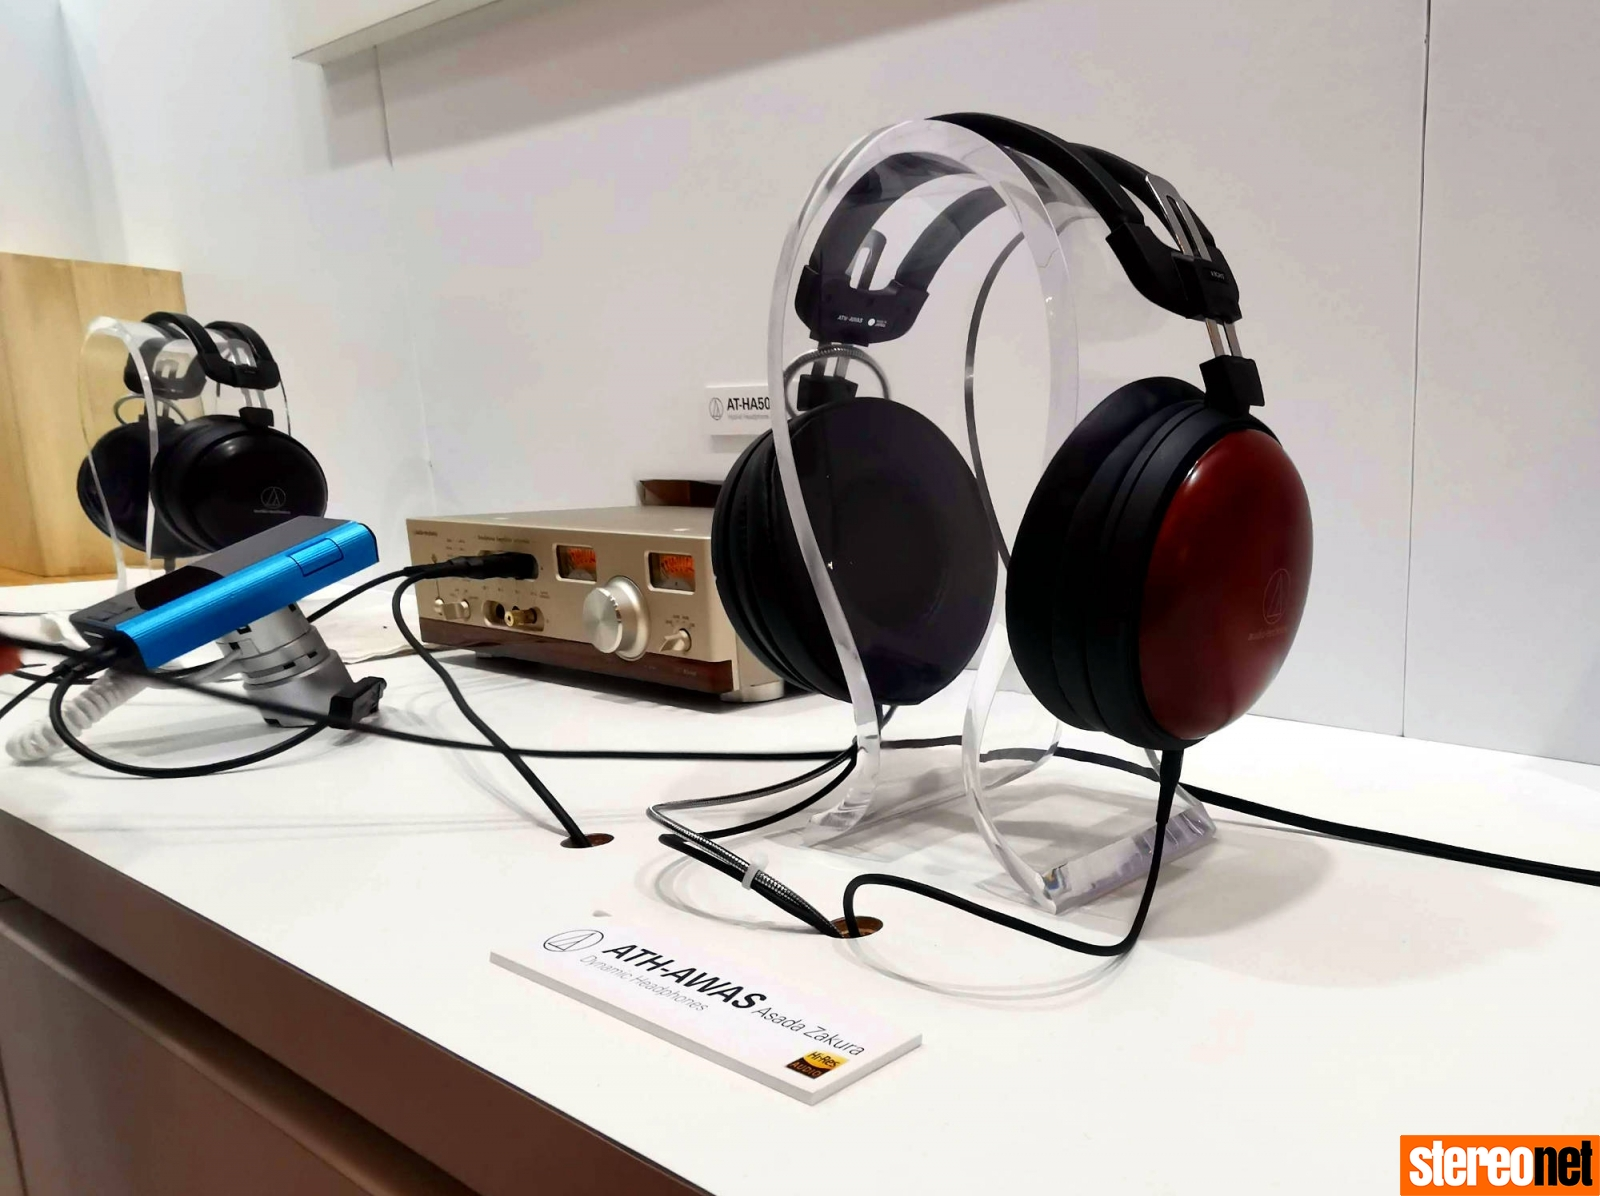 Audio-technica Bristol hifi show 2020 report